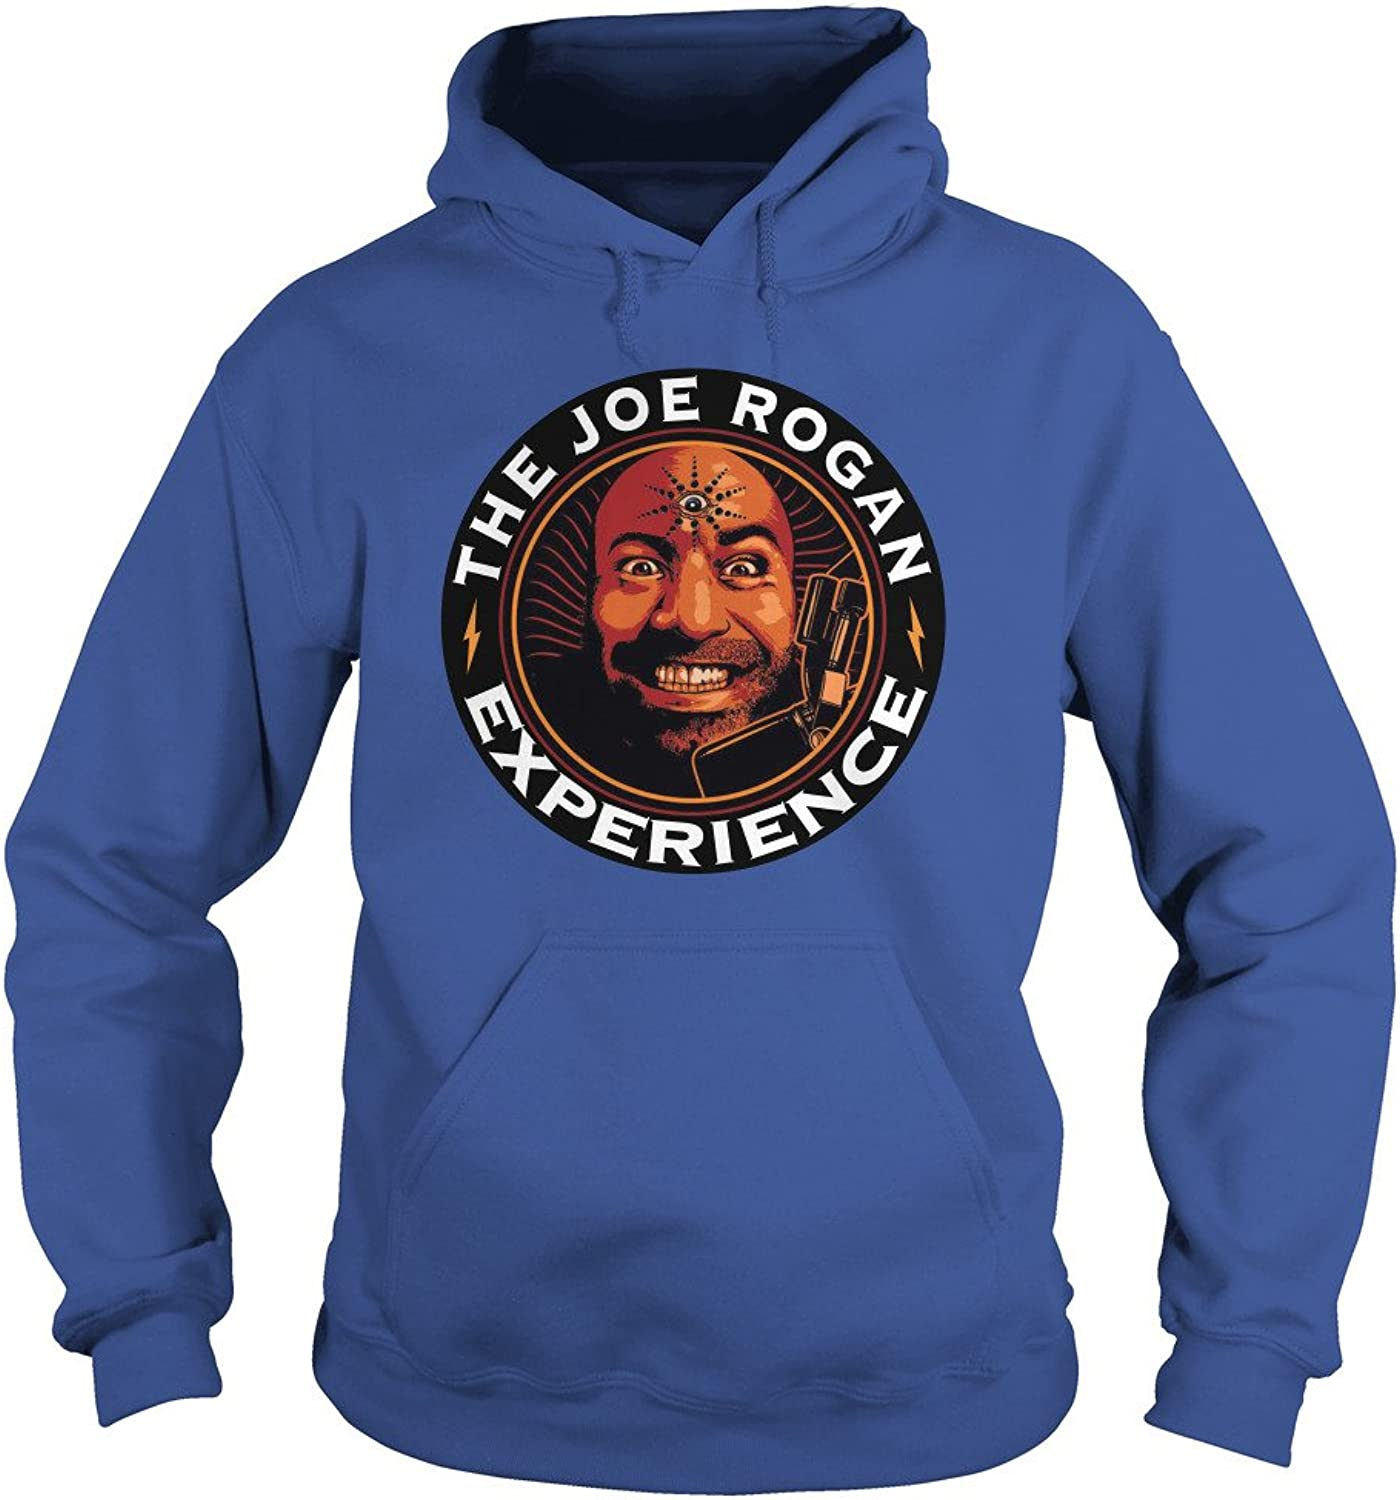 The Joe Rogan Experience TShirt